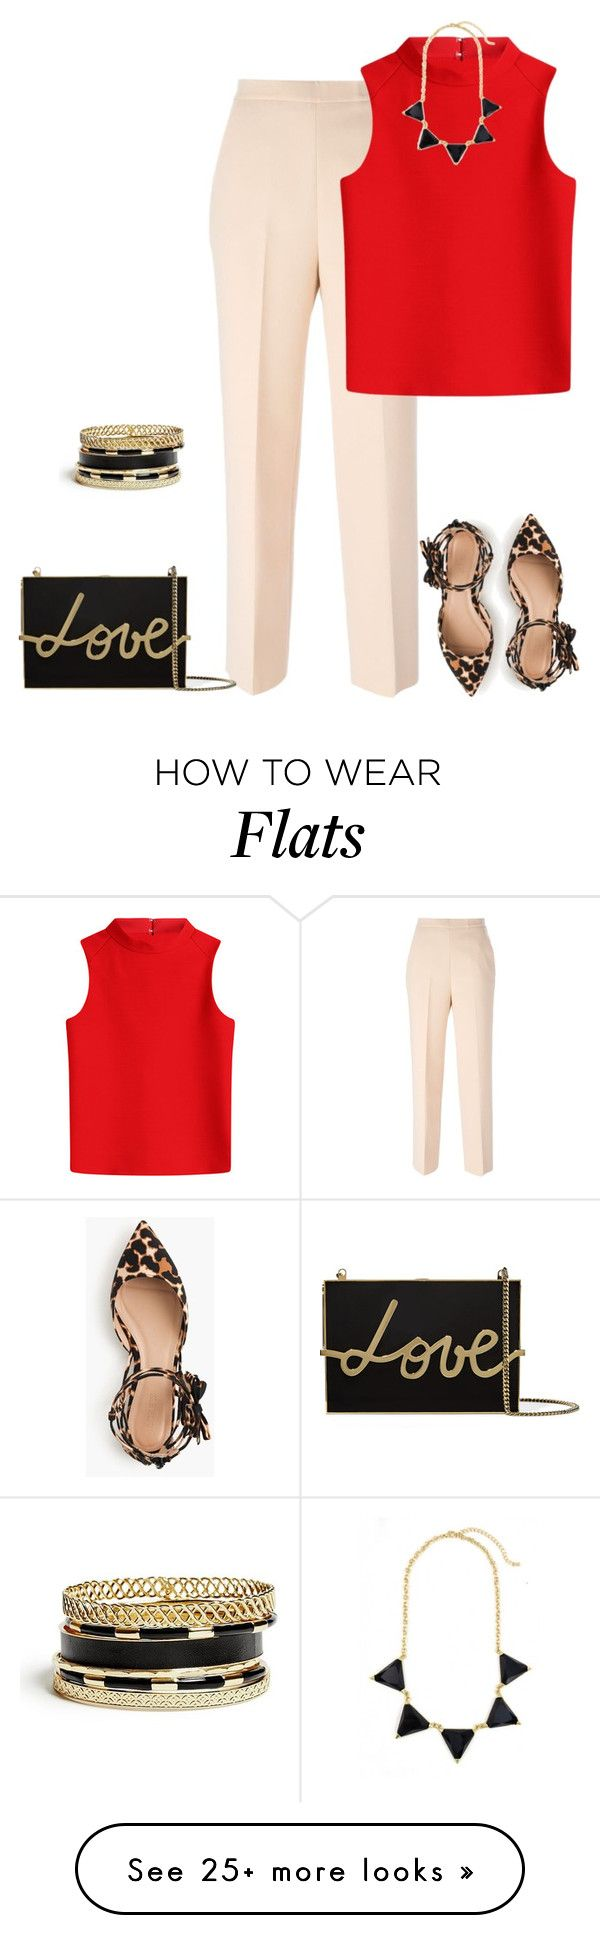 """""""outfit 3009"""" by natalyag on Polyvore featuring MSGM, Courrèges, J.Crew, Lanvin and GUESS"""